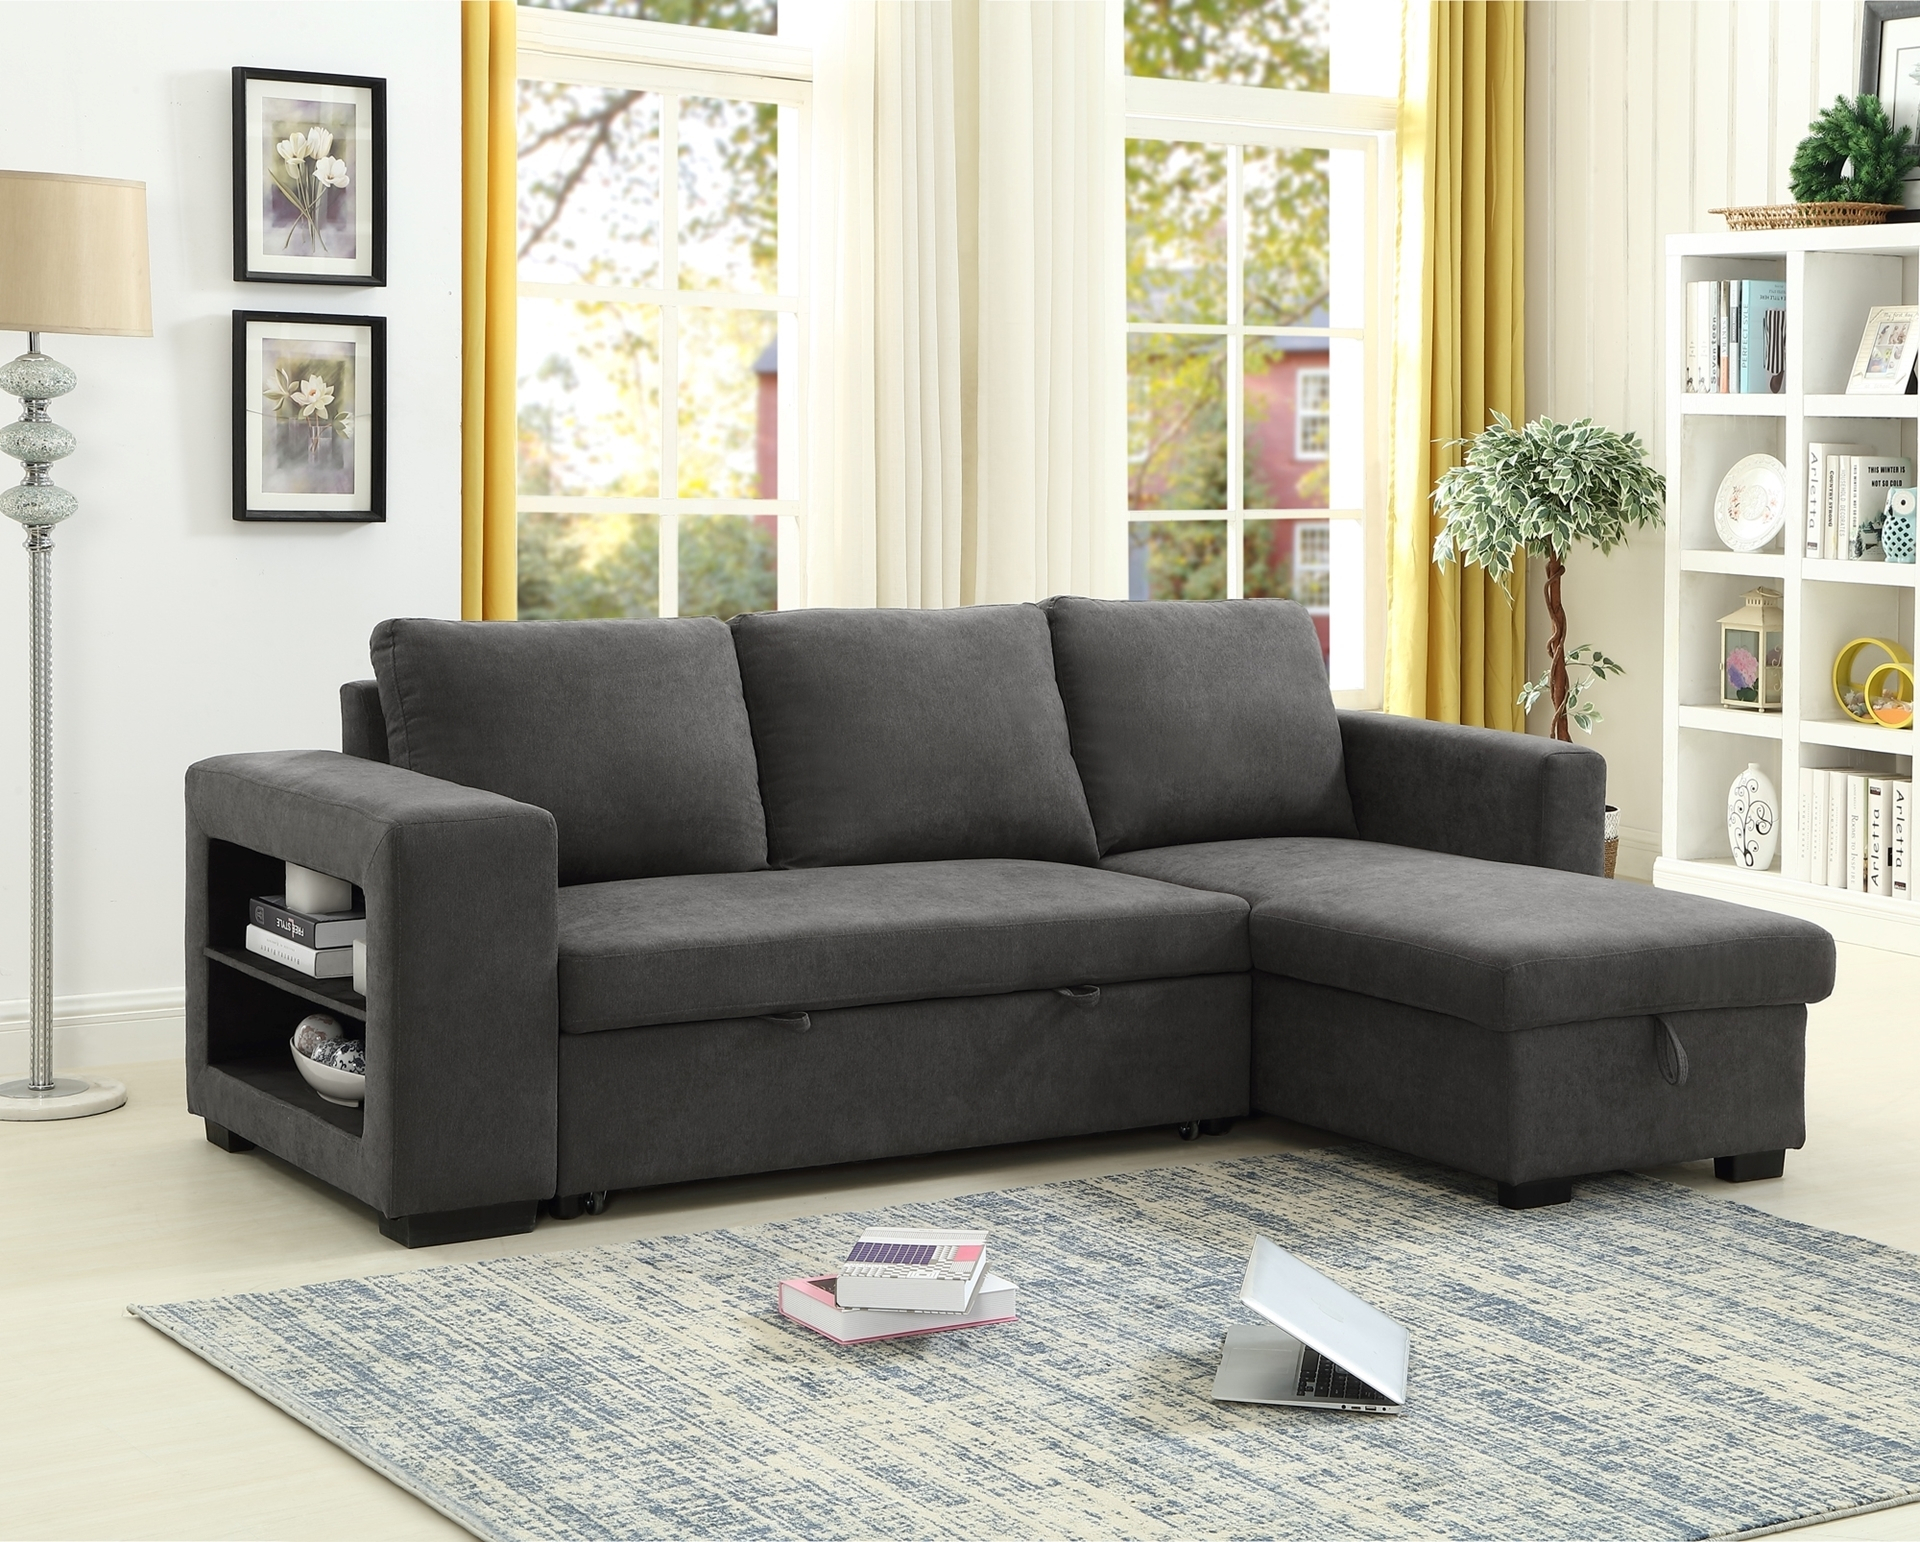 Lucena Reversible Sectional Sofa/Sofa Bed With Storage With Regard To Palisades Reversible Small Space Sectional Sofas With Storage (View 3 of 15)